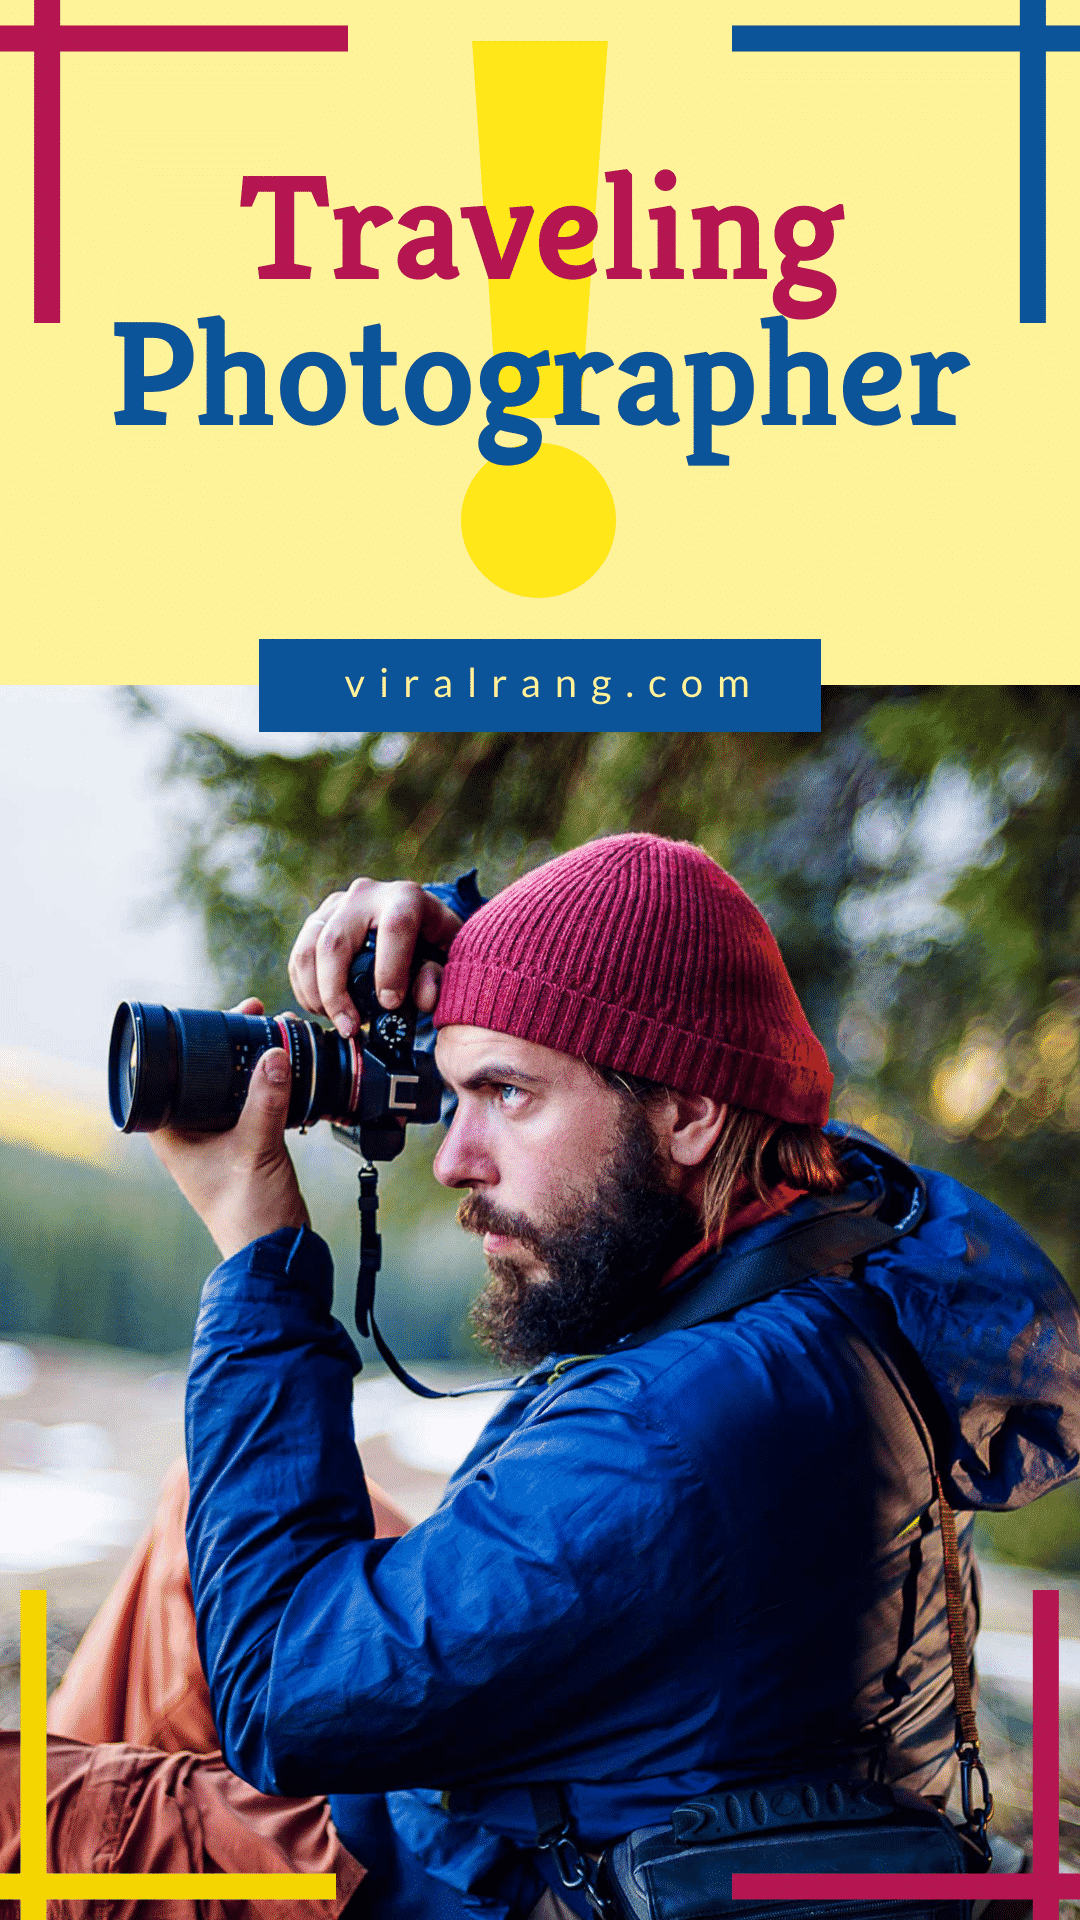 Traveling Photographer